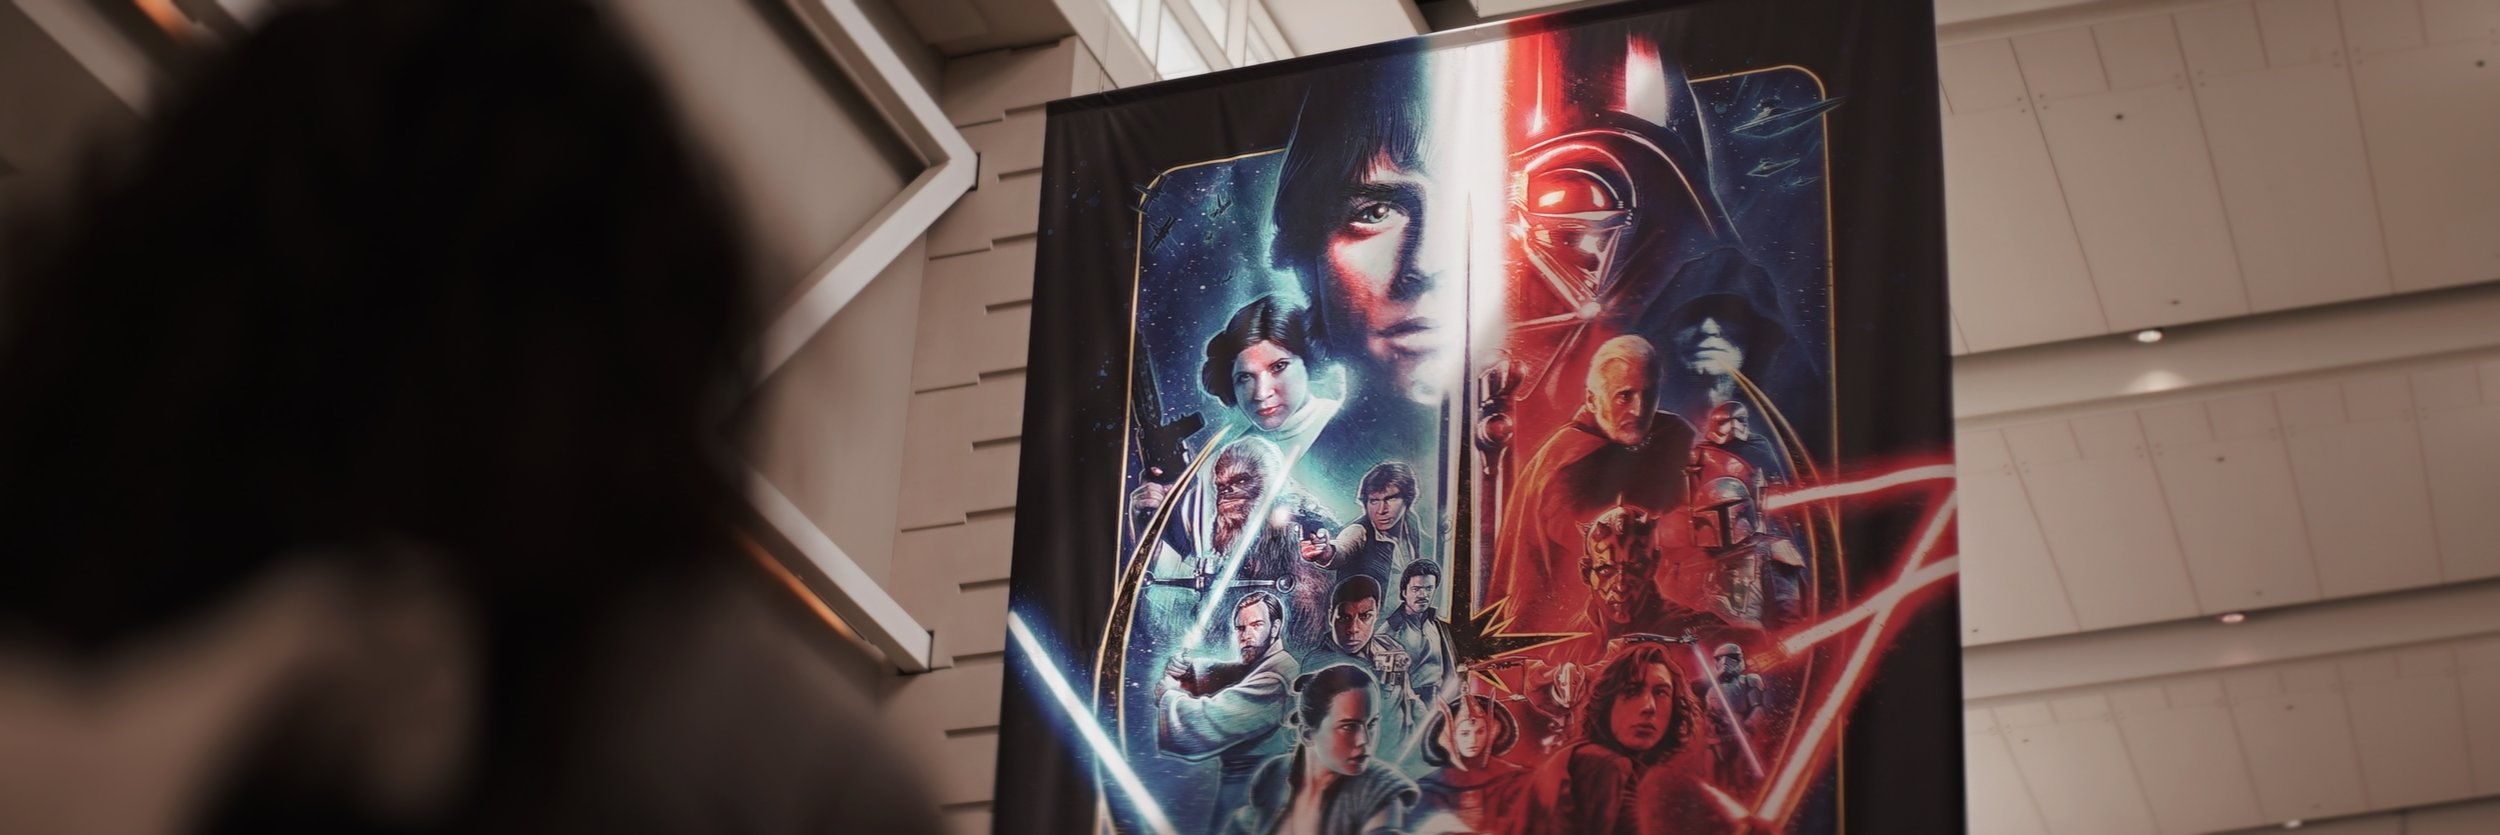 Lomo 75mm Anamorphic Lens | Star Wars Celebration Chicago - SWCC | This sprawling banner greets you in the main hall at McCormick place. - Photo by: Keith Nickoson